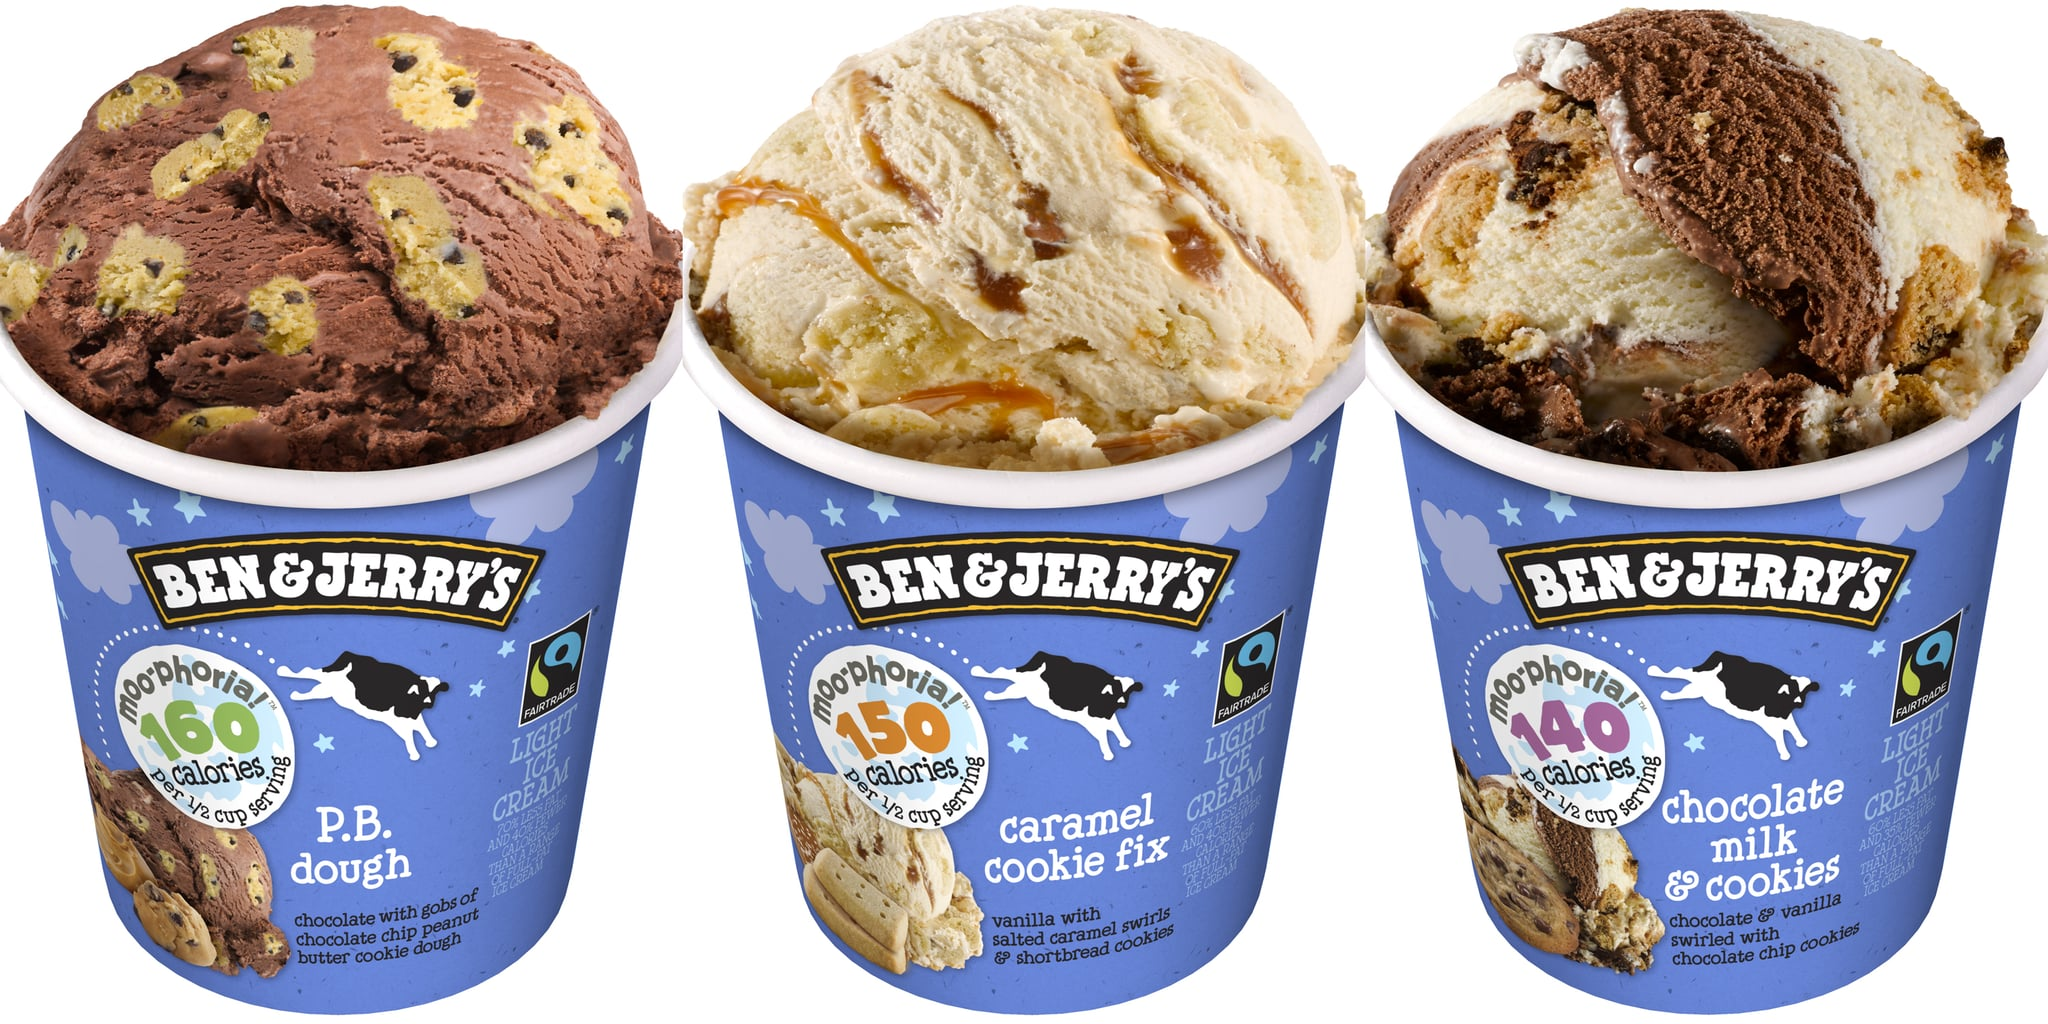 Ben & Jerry's launching light ice cream varieties